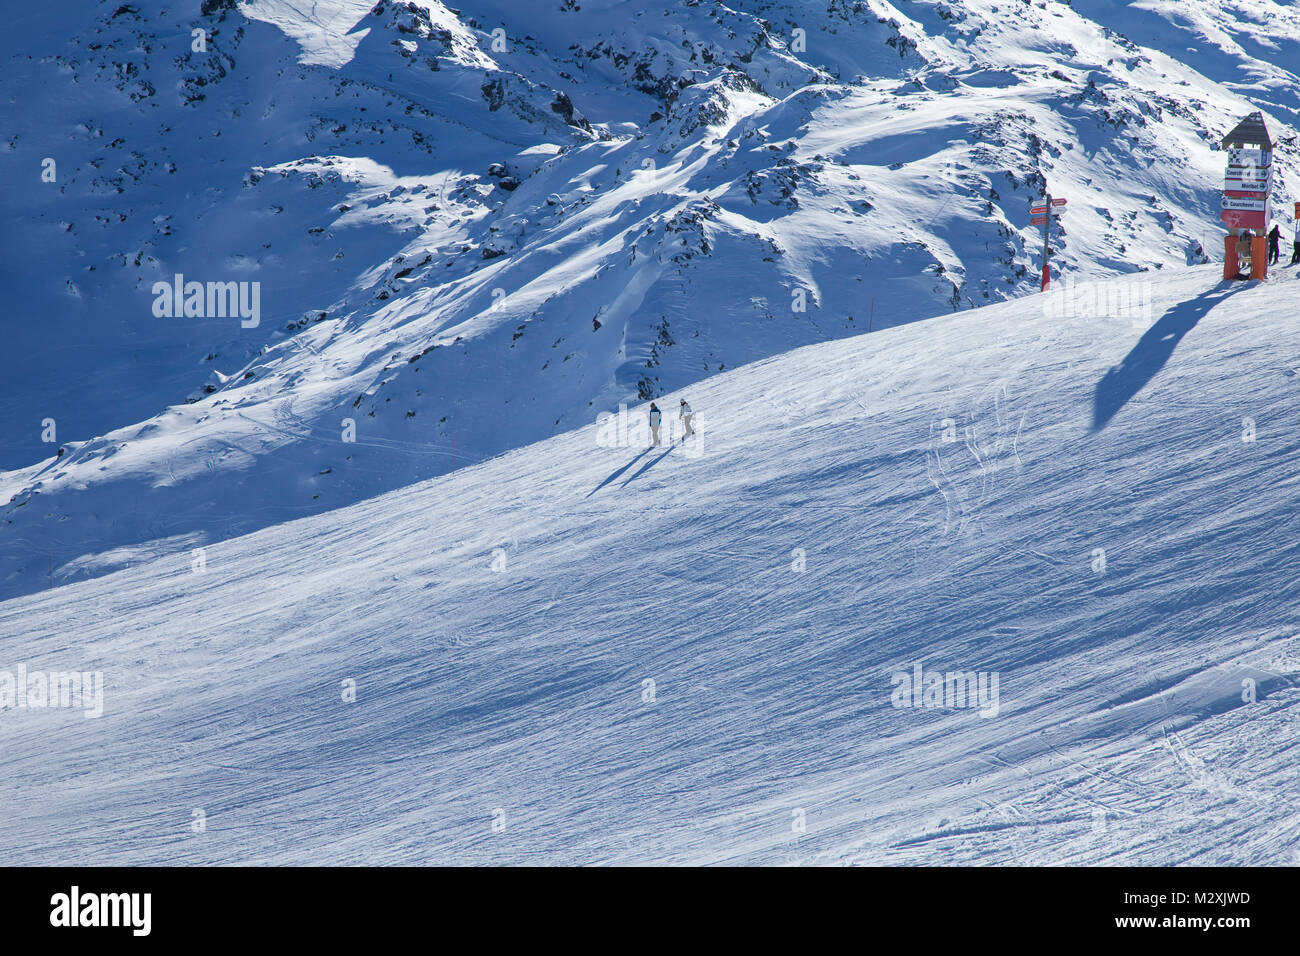 mountains and piste, Courchevel, Savoie, France. - Stock Image